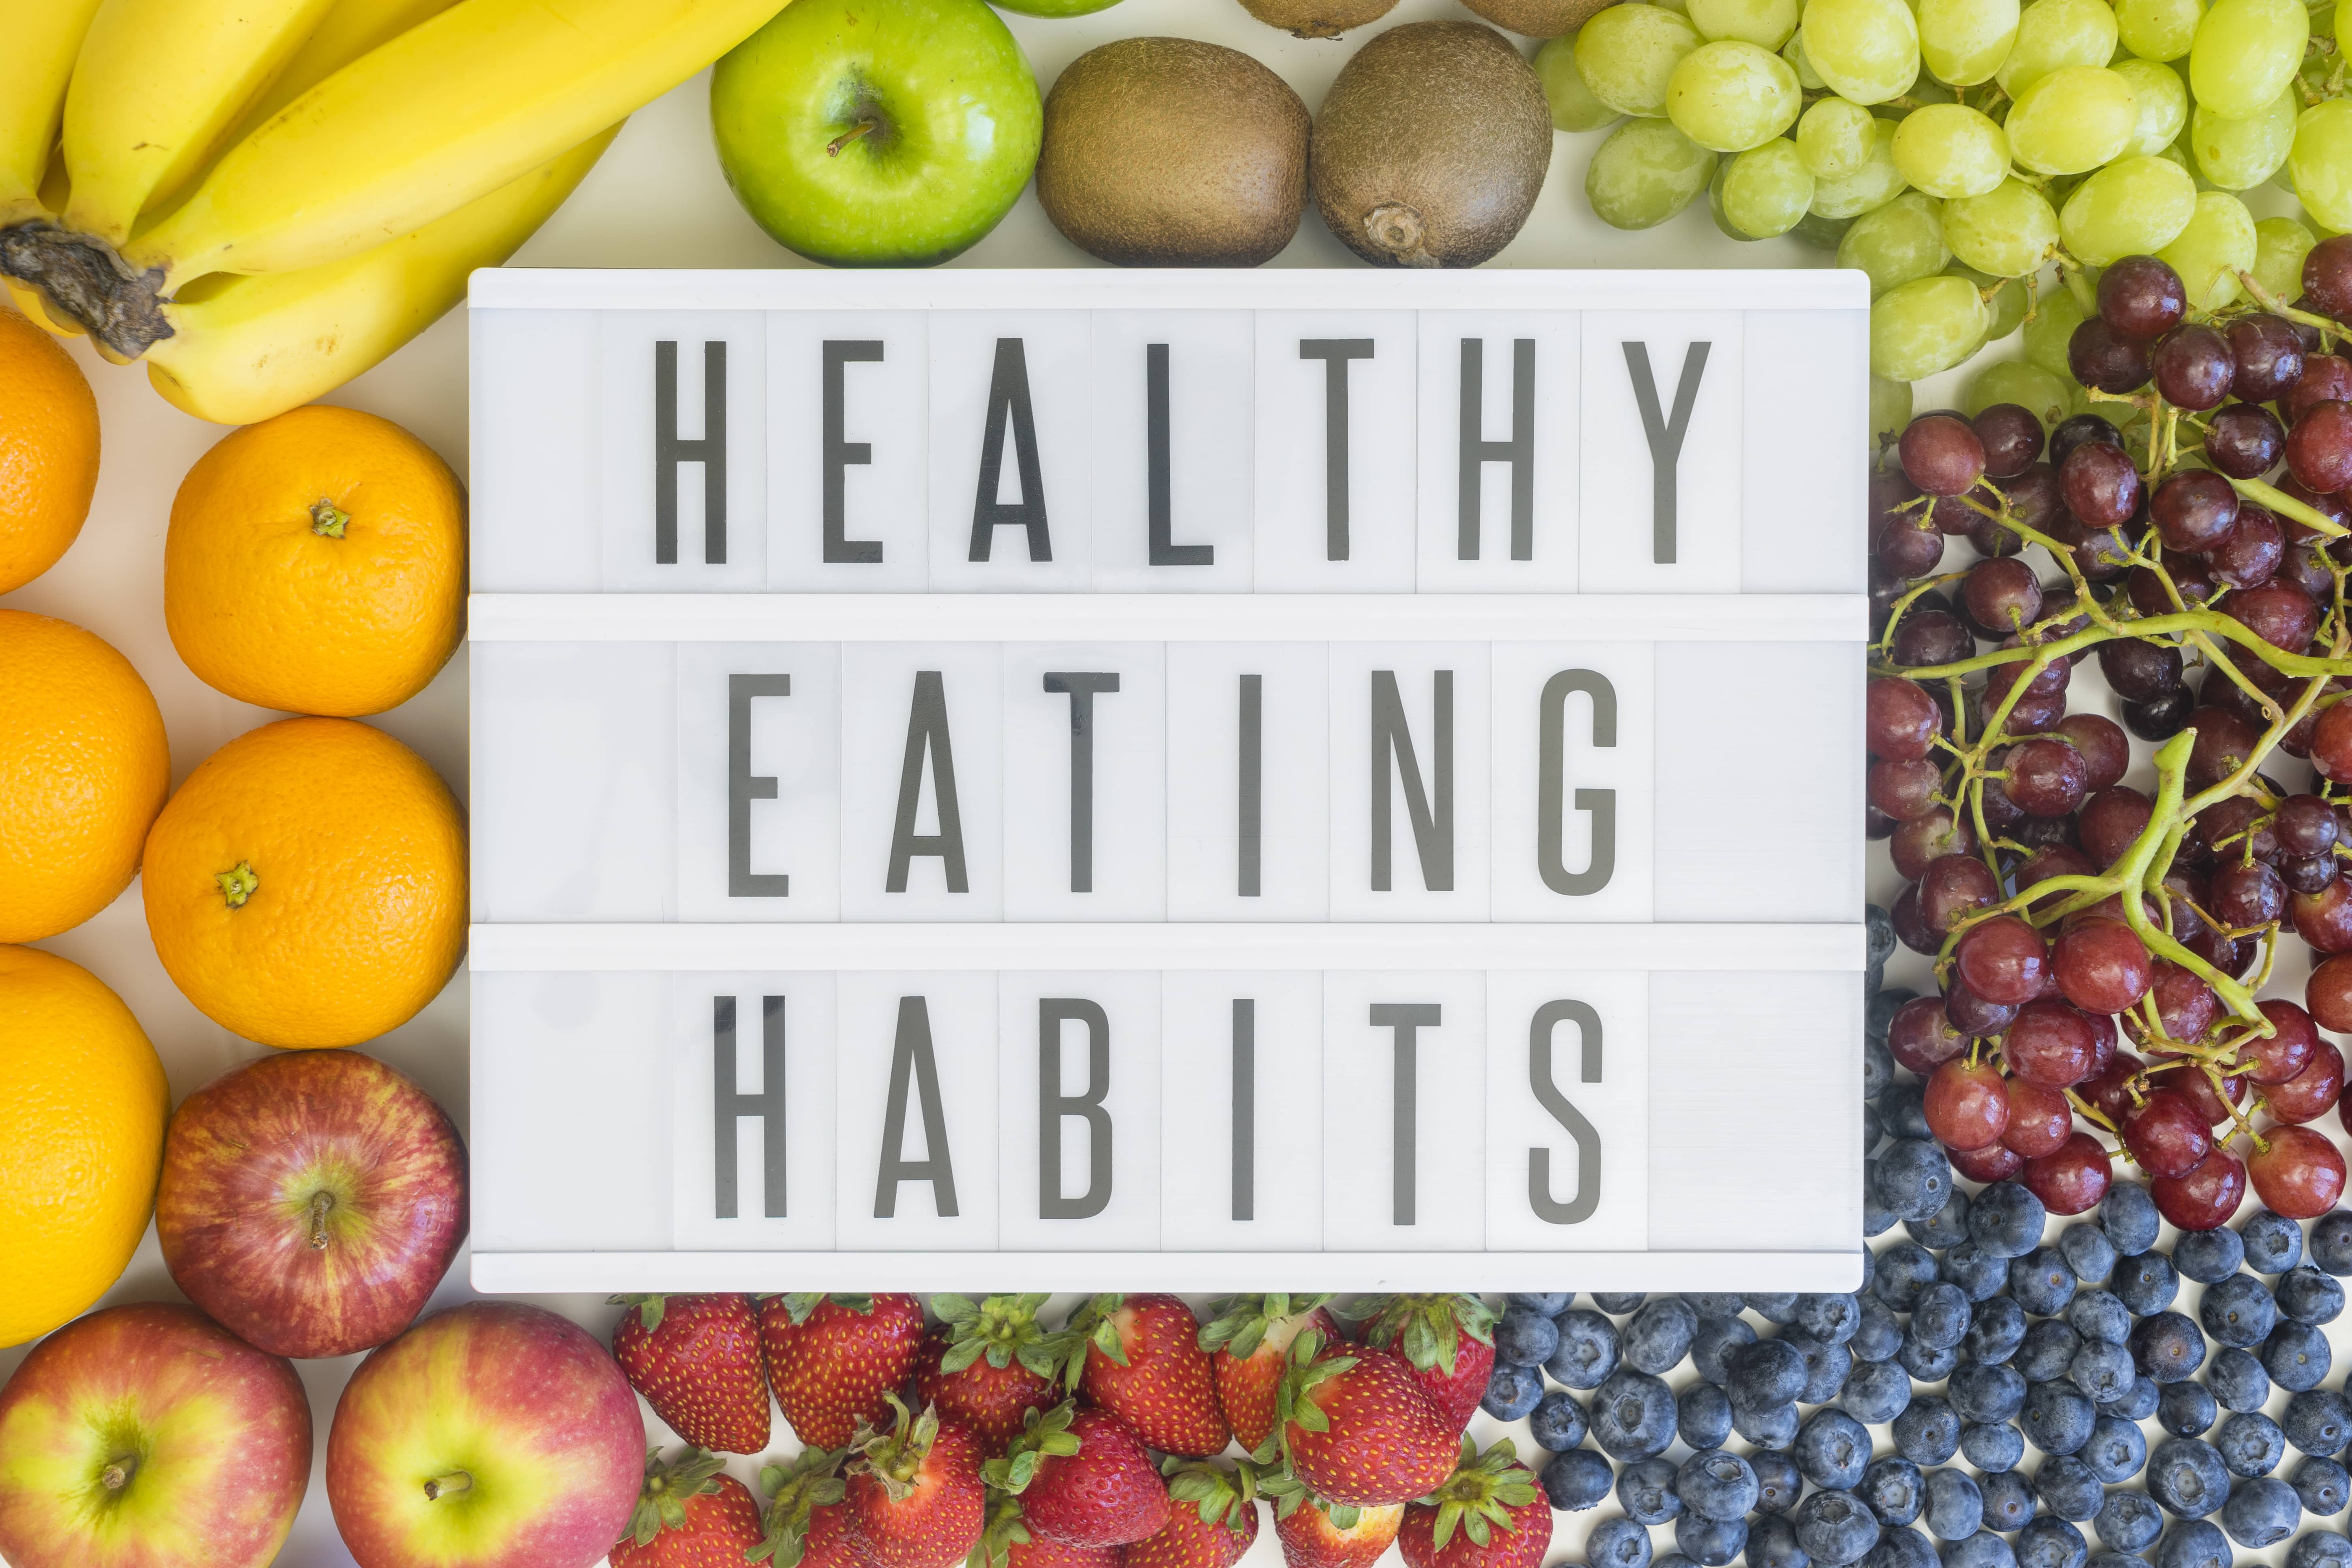 Create Healthier Eating Habits By Adding Not Subtracting